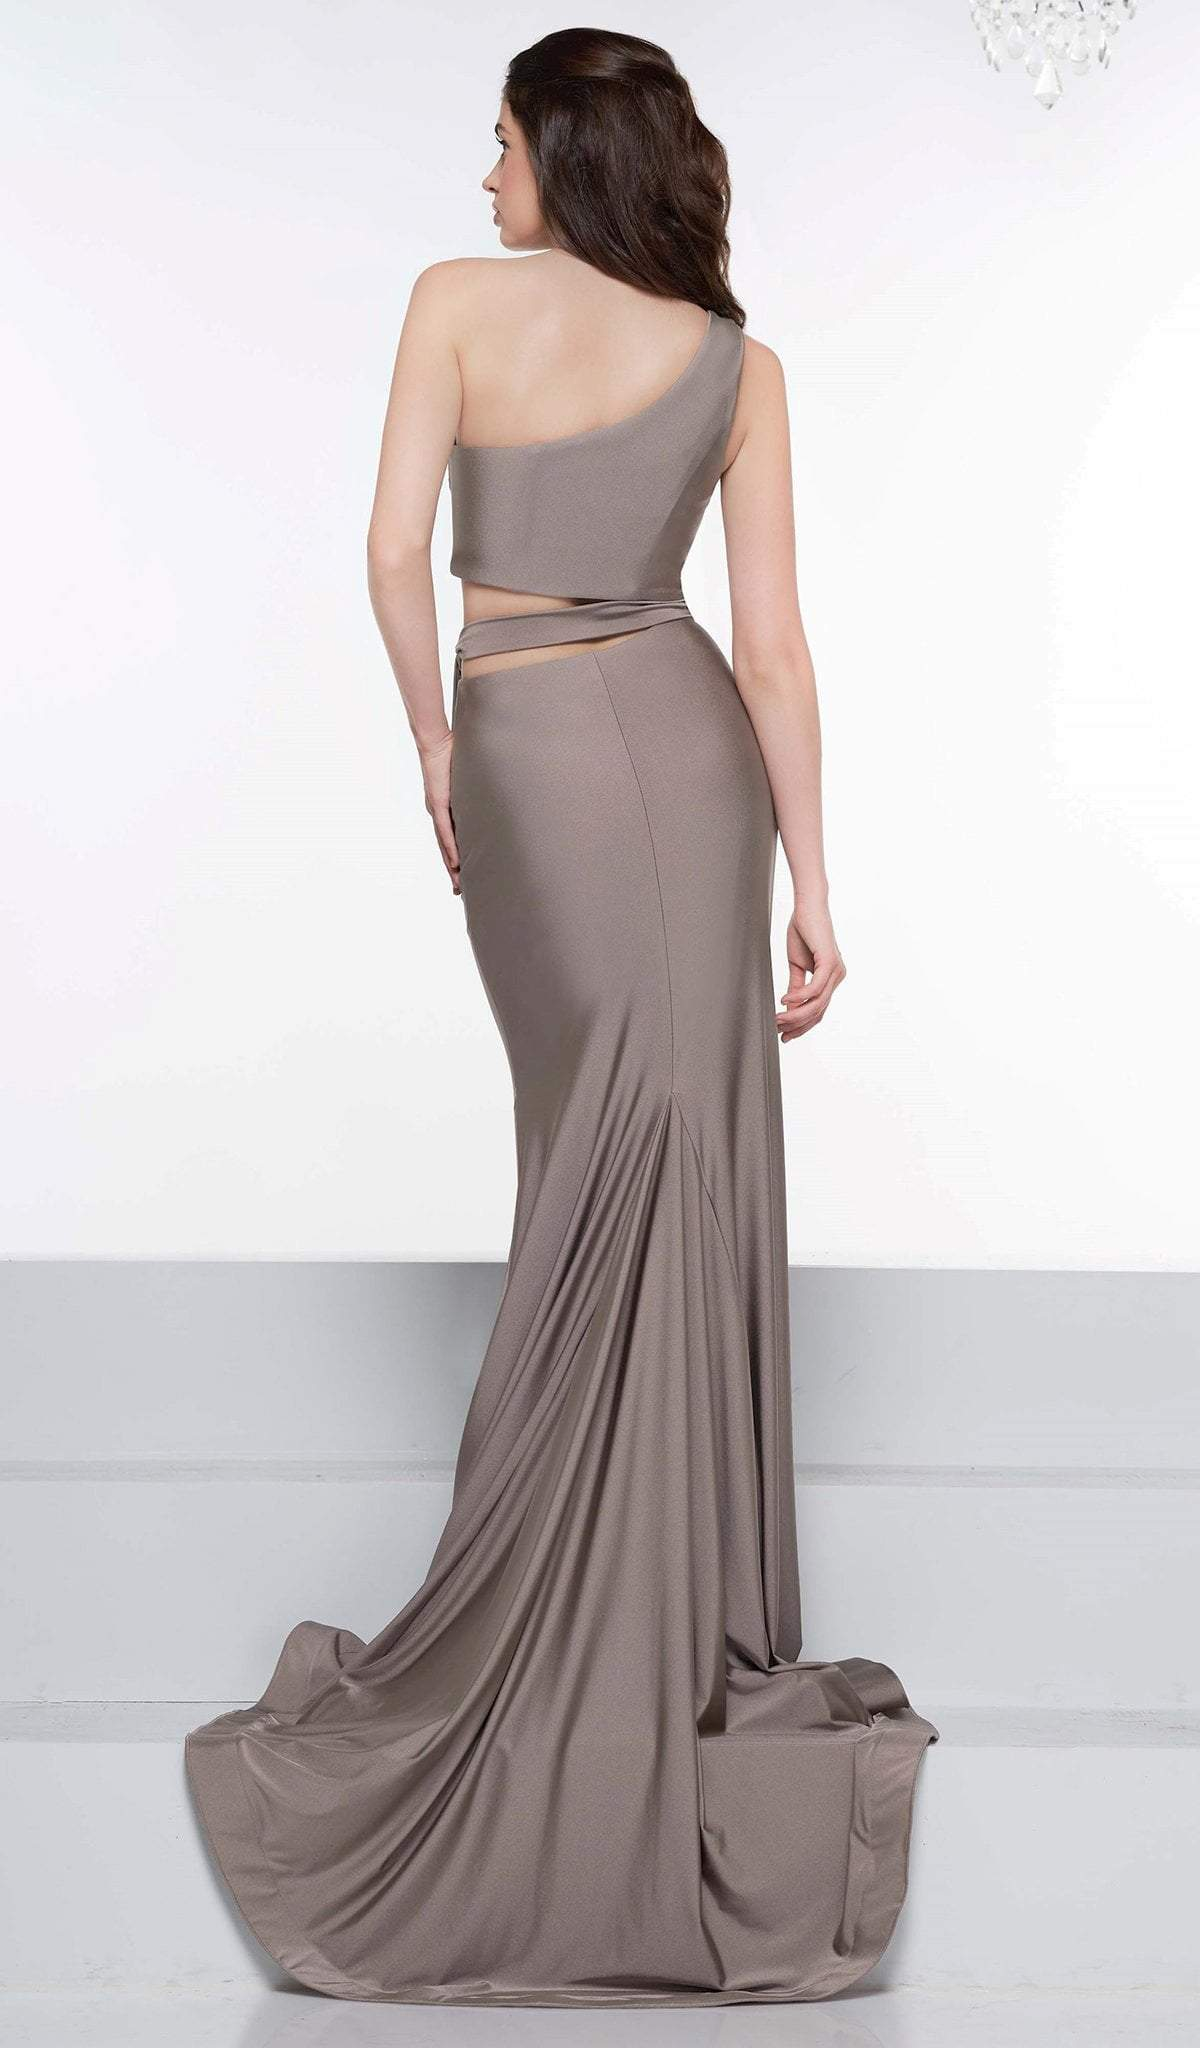 Colors Dress - 2137 Asymmetrical Exposed Midriff High Slit Gown In Brown and Gray